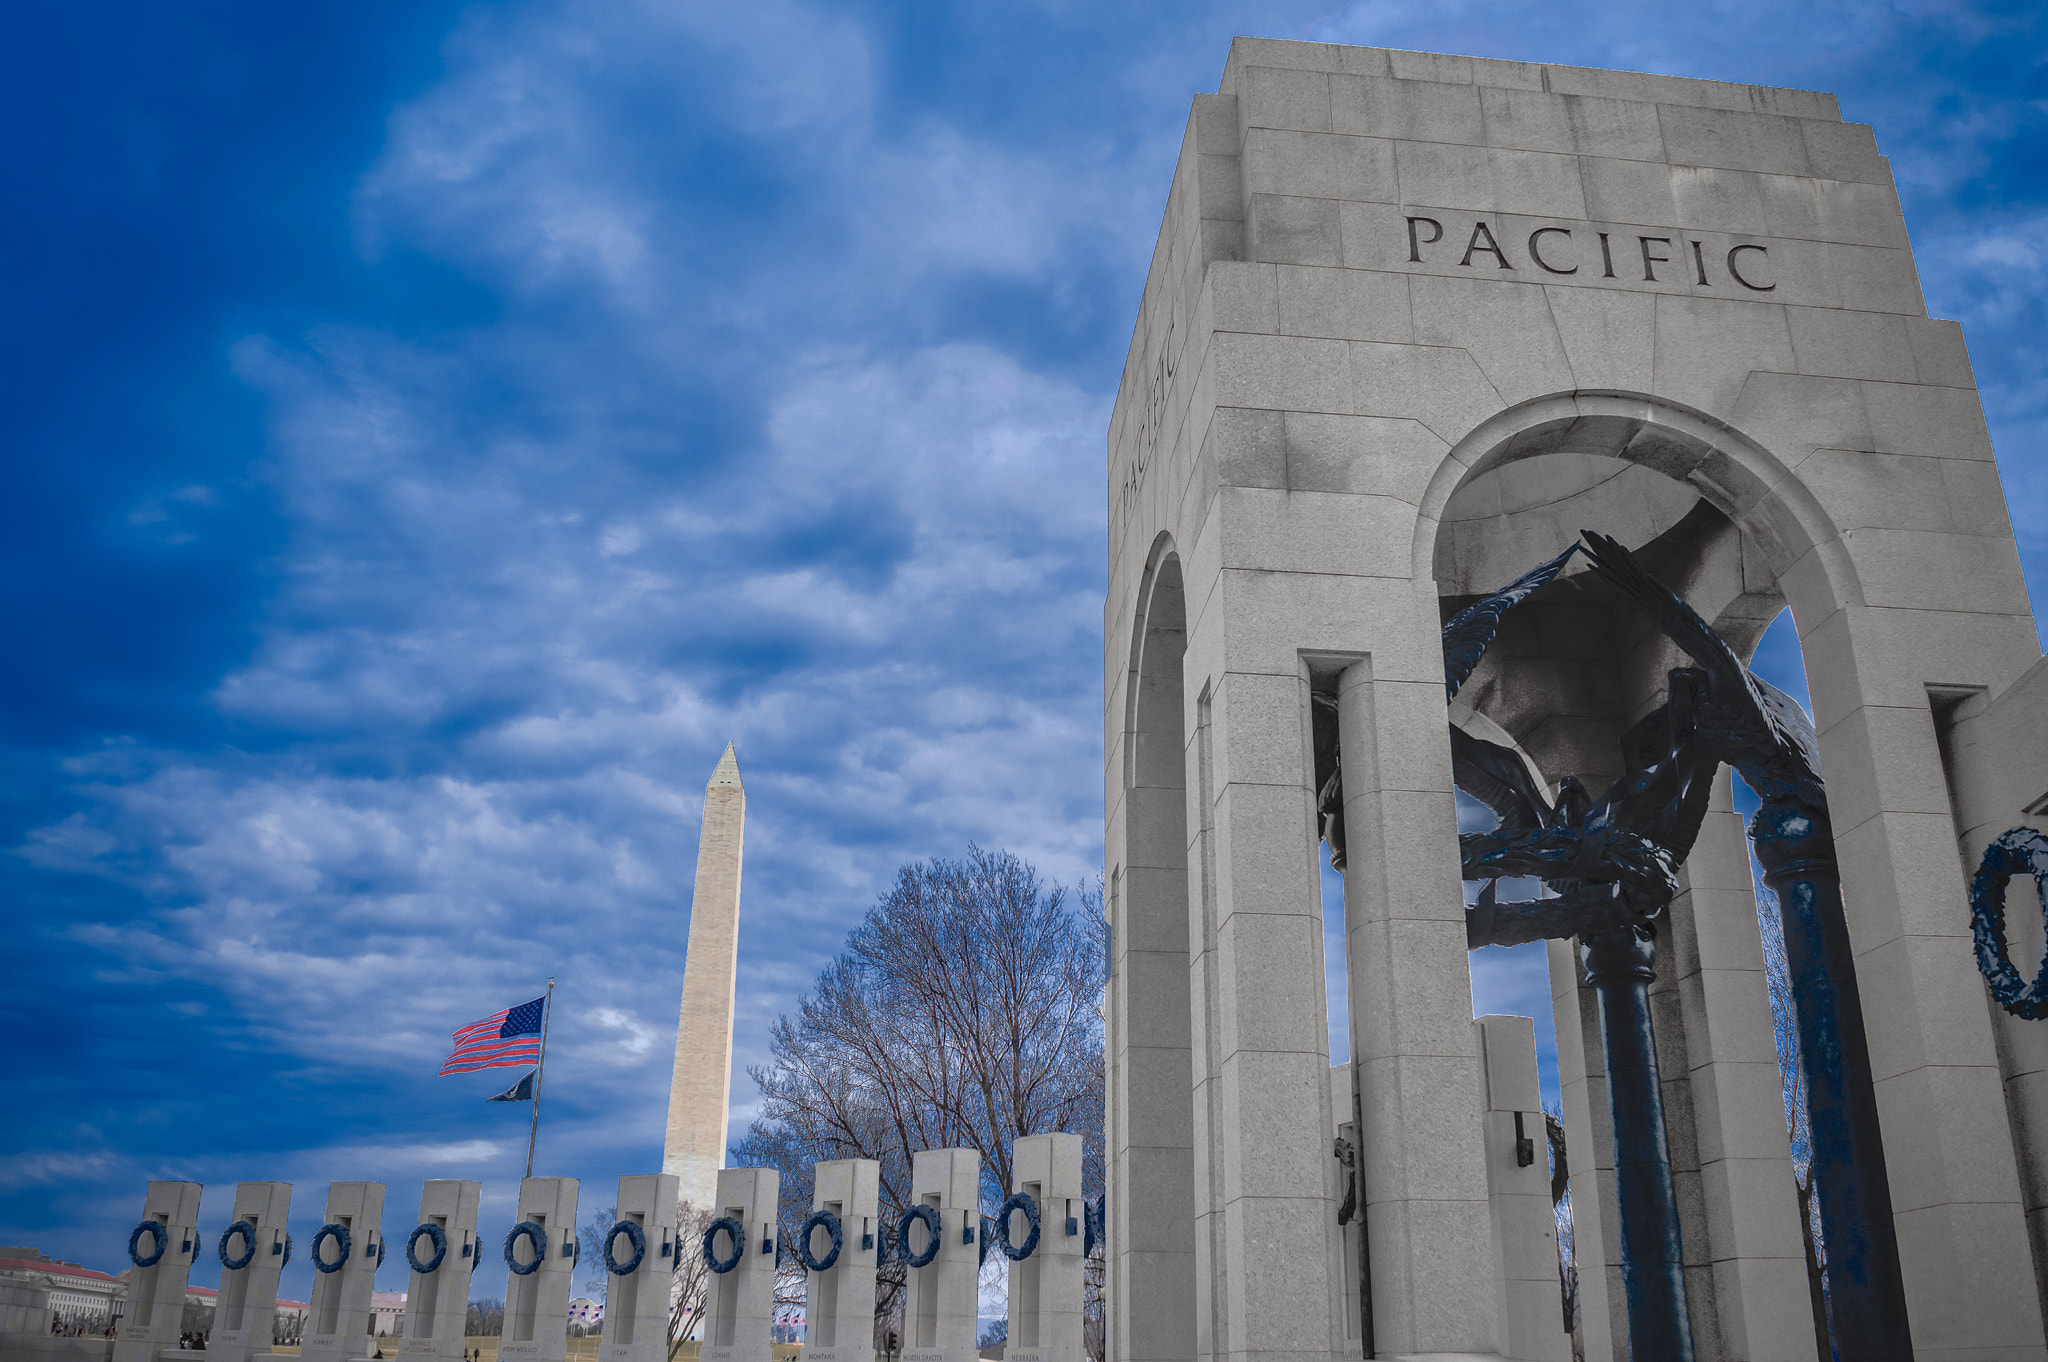 Photograph the Pacific Pavilion by Monico Havier on 500px